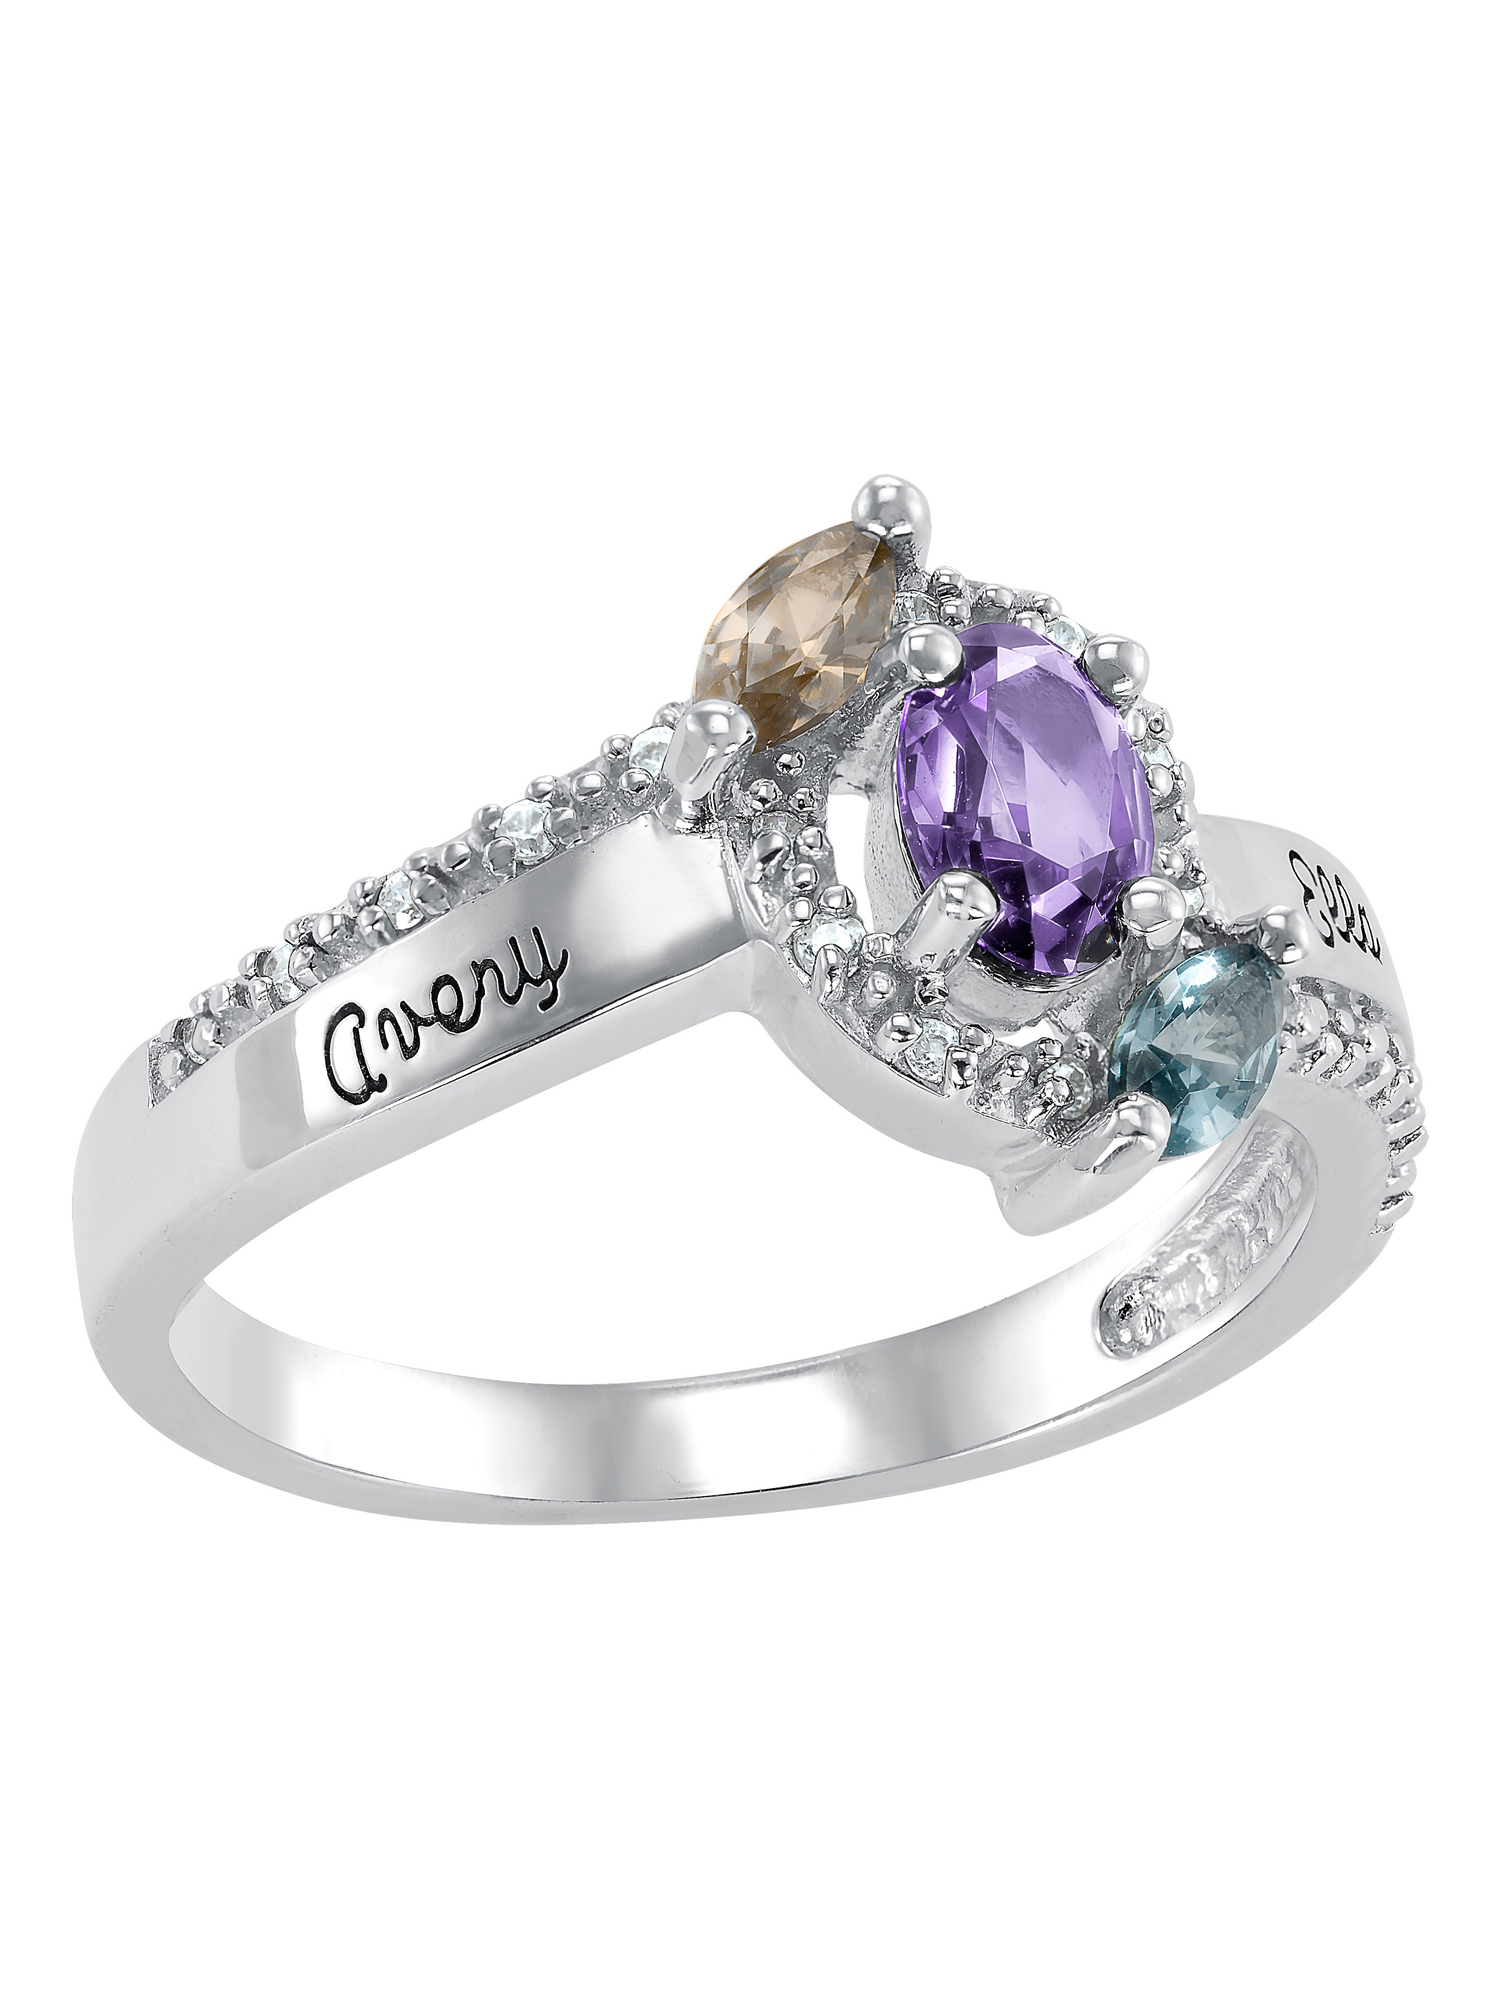 Keepsake Personalized Women's Calista Class Ring available in Valadium, Silver Plus, 10kt and 14kt Yellow and White Gold